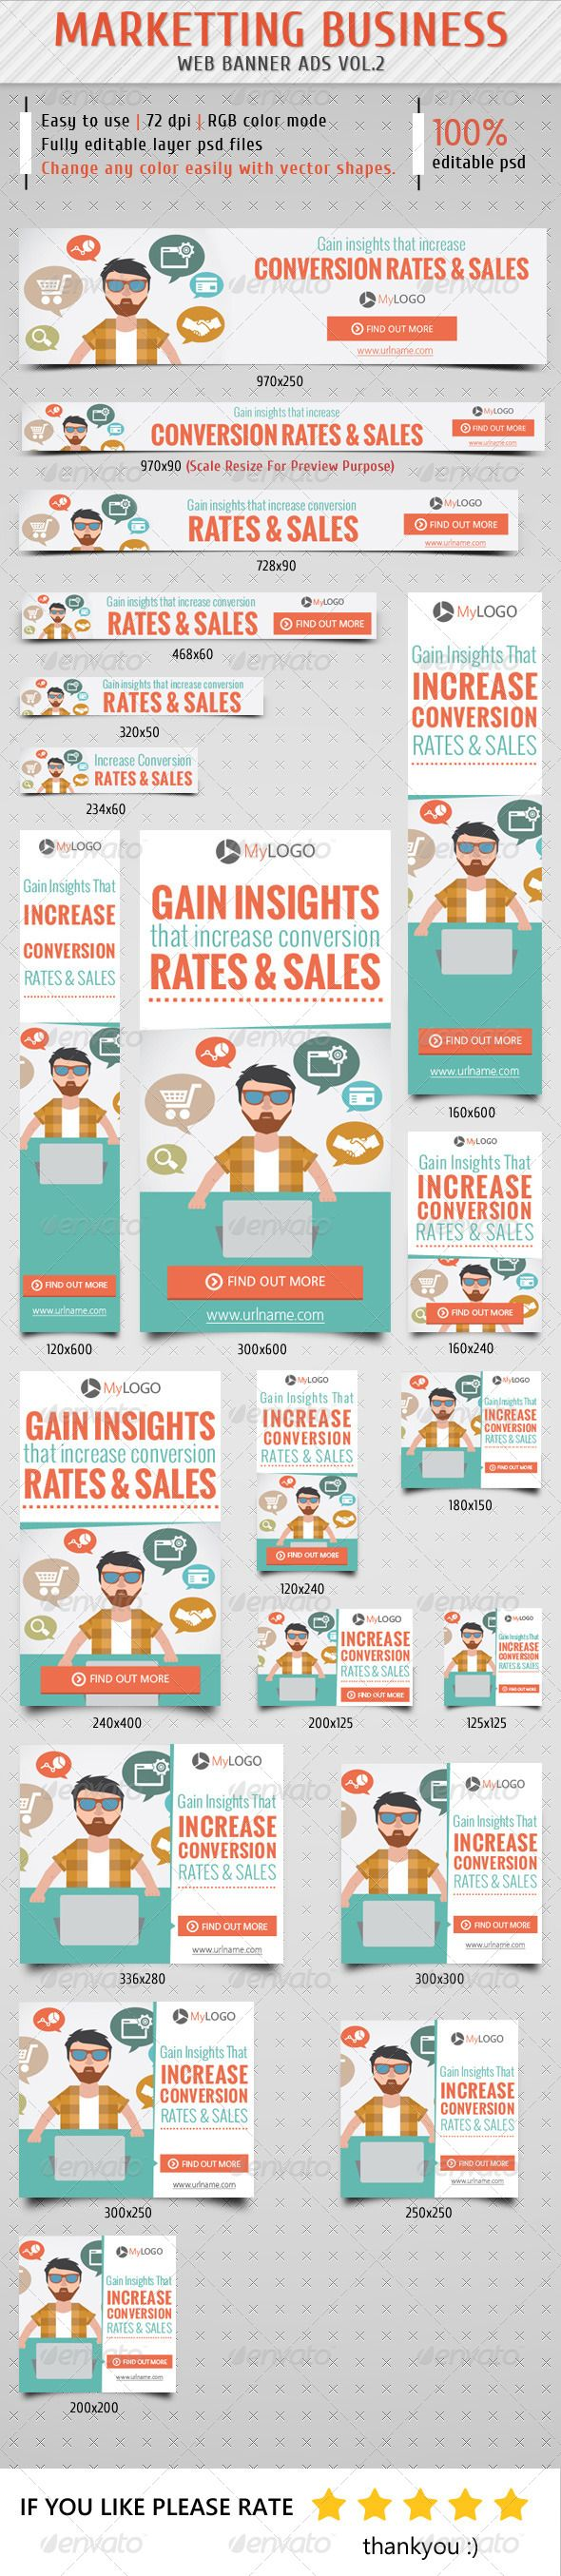 Marketting Business Banner Ads Template PSD | Buy and Download: http://graphicriver.net/item/marketting-business-banner-ads-vol2/8625169?WT.ac=category_thumb&WT.z_author=samiul75&ref=ksioks